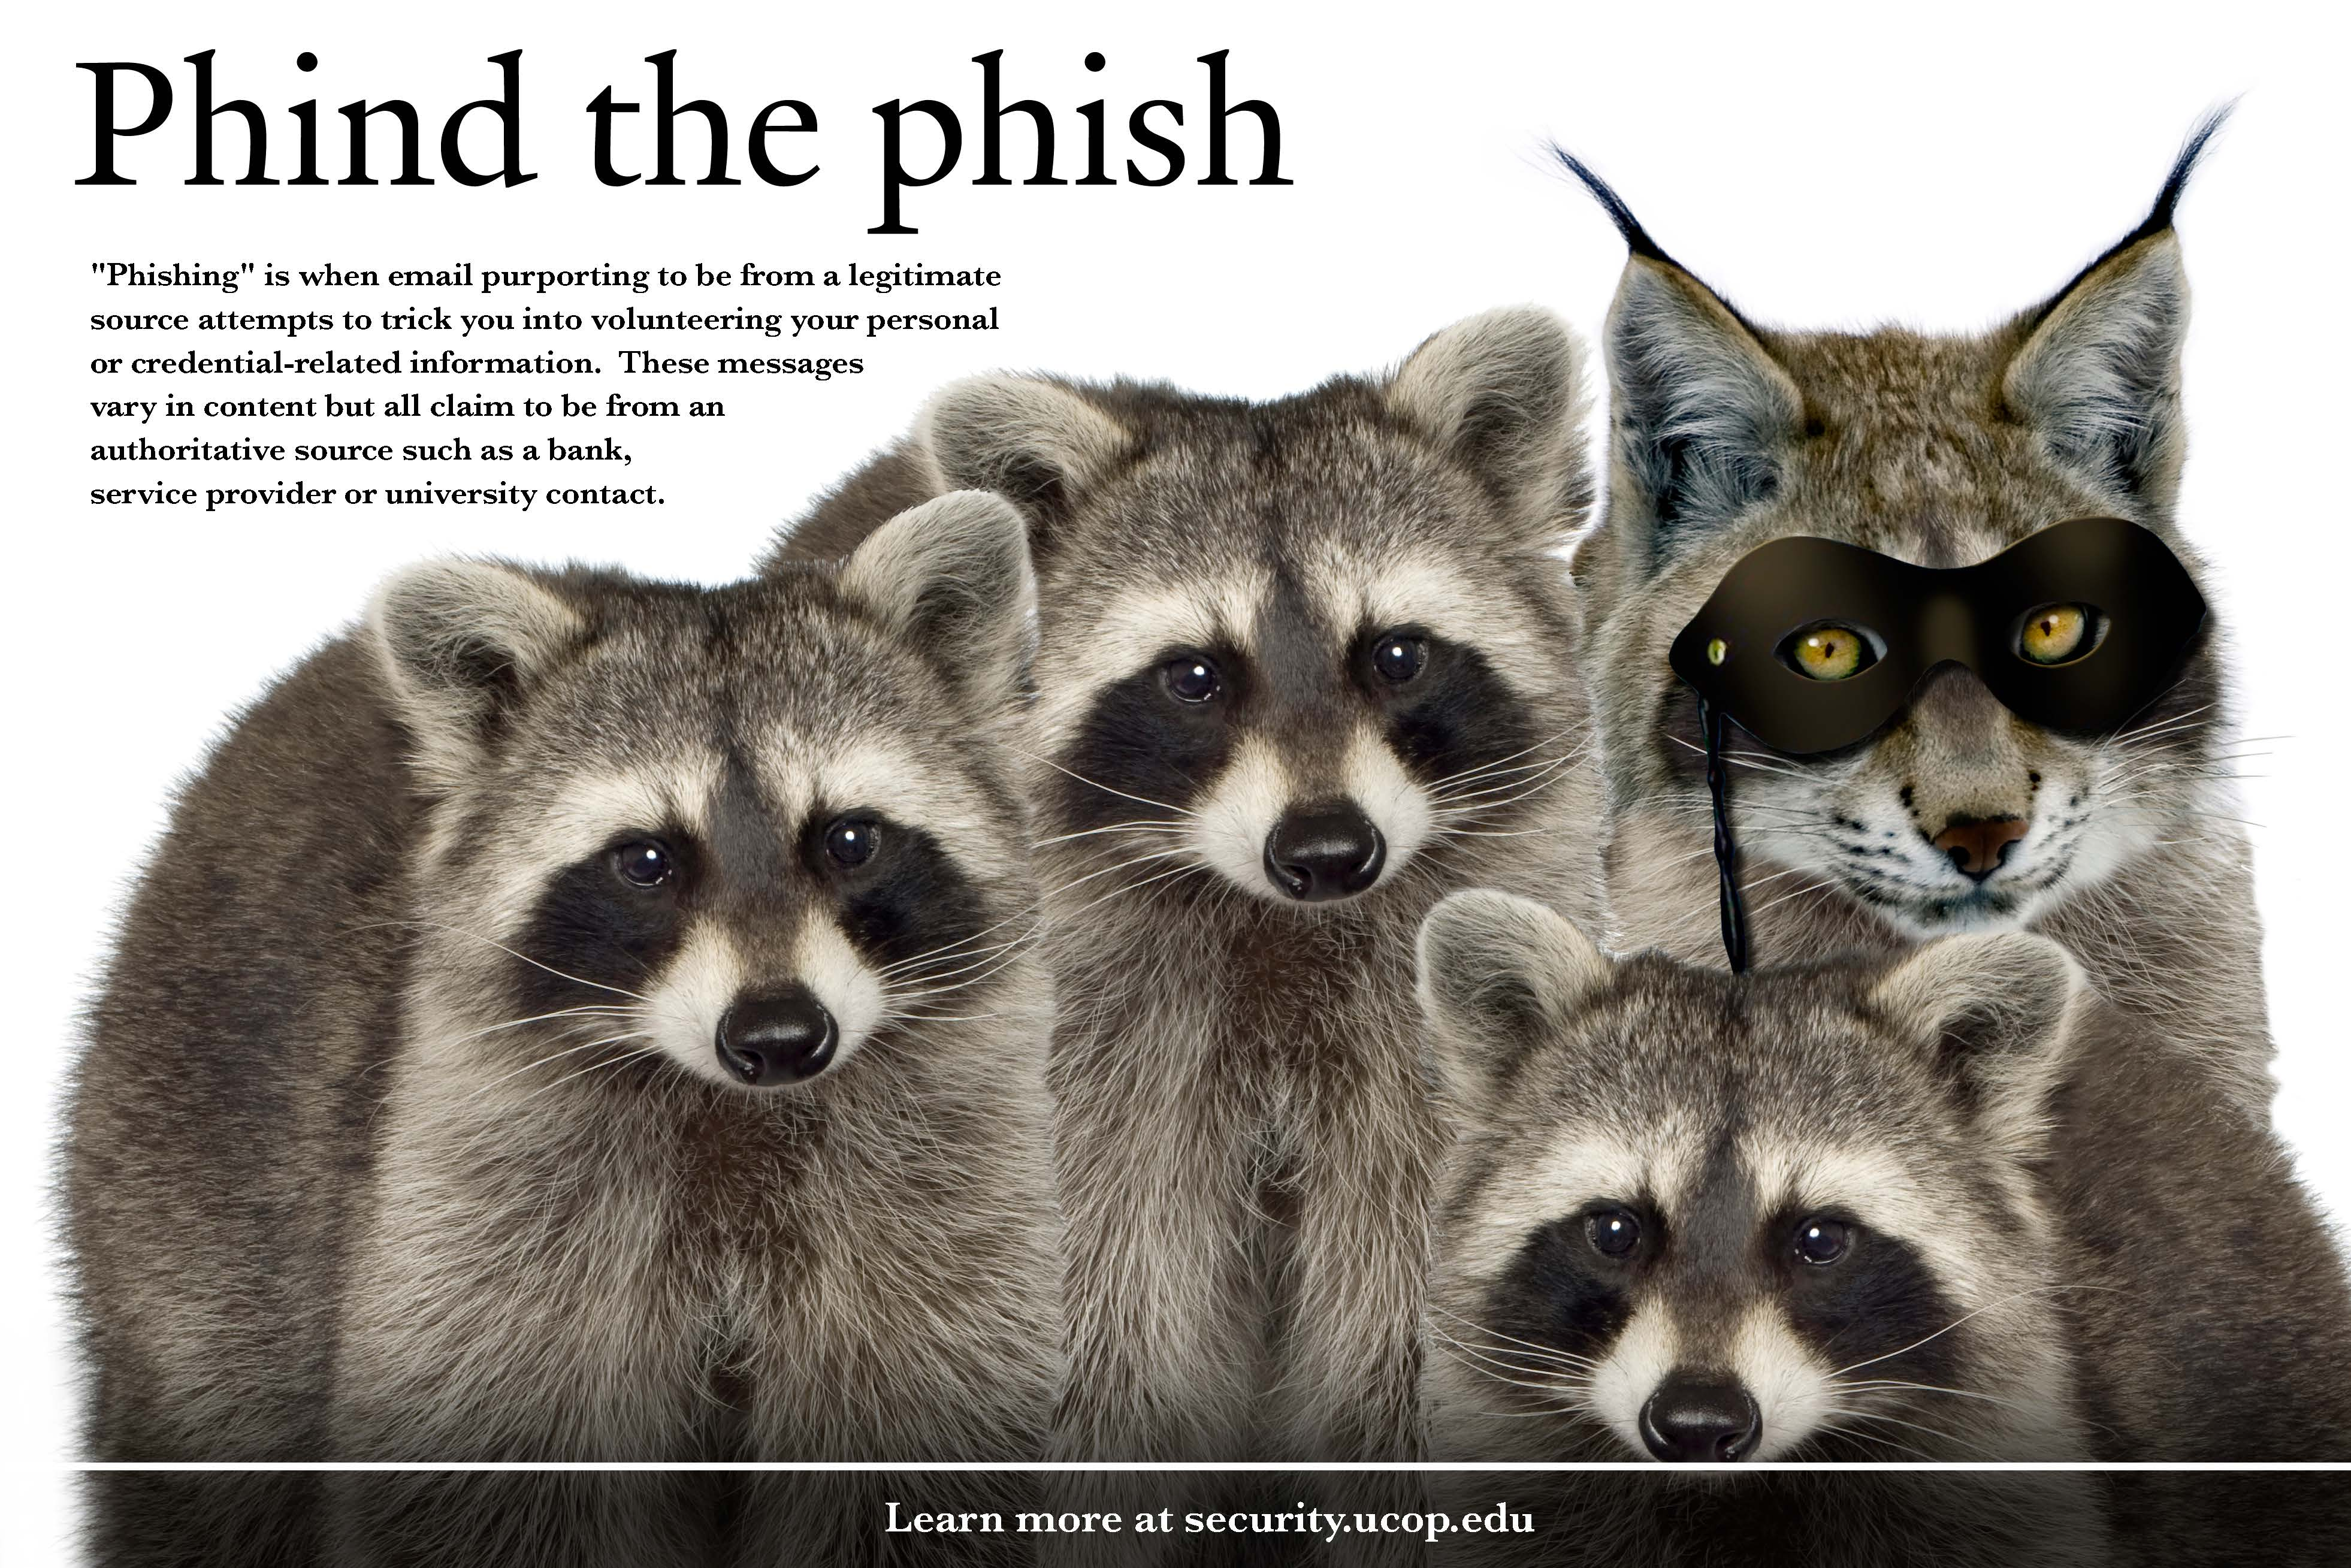 Flyer: Phind the phish. -  Racoon Bobcat